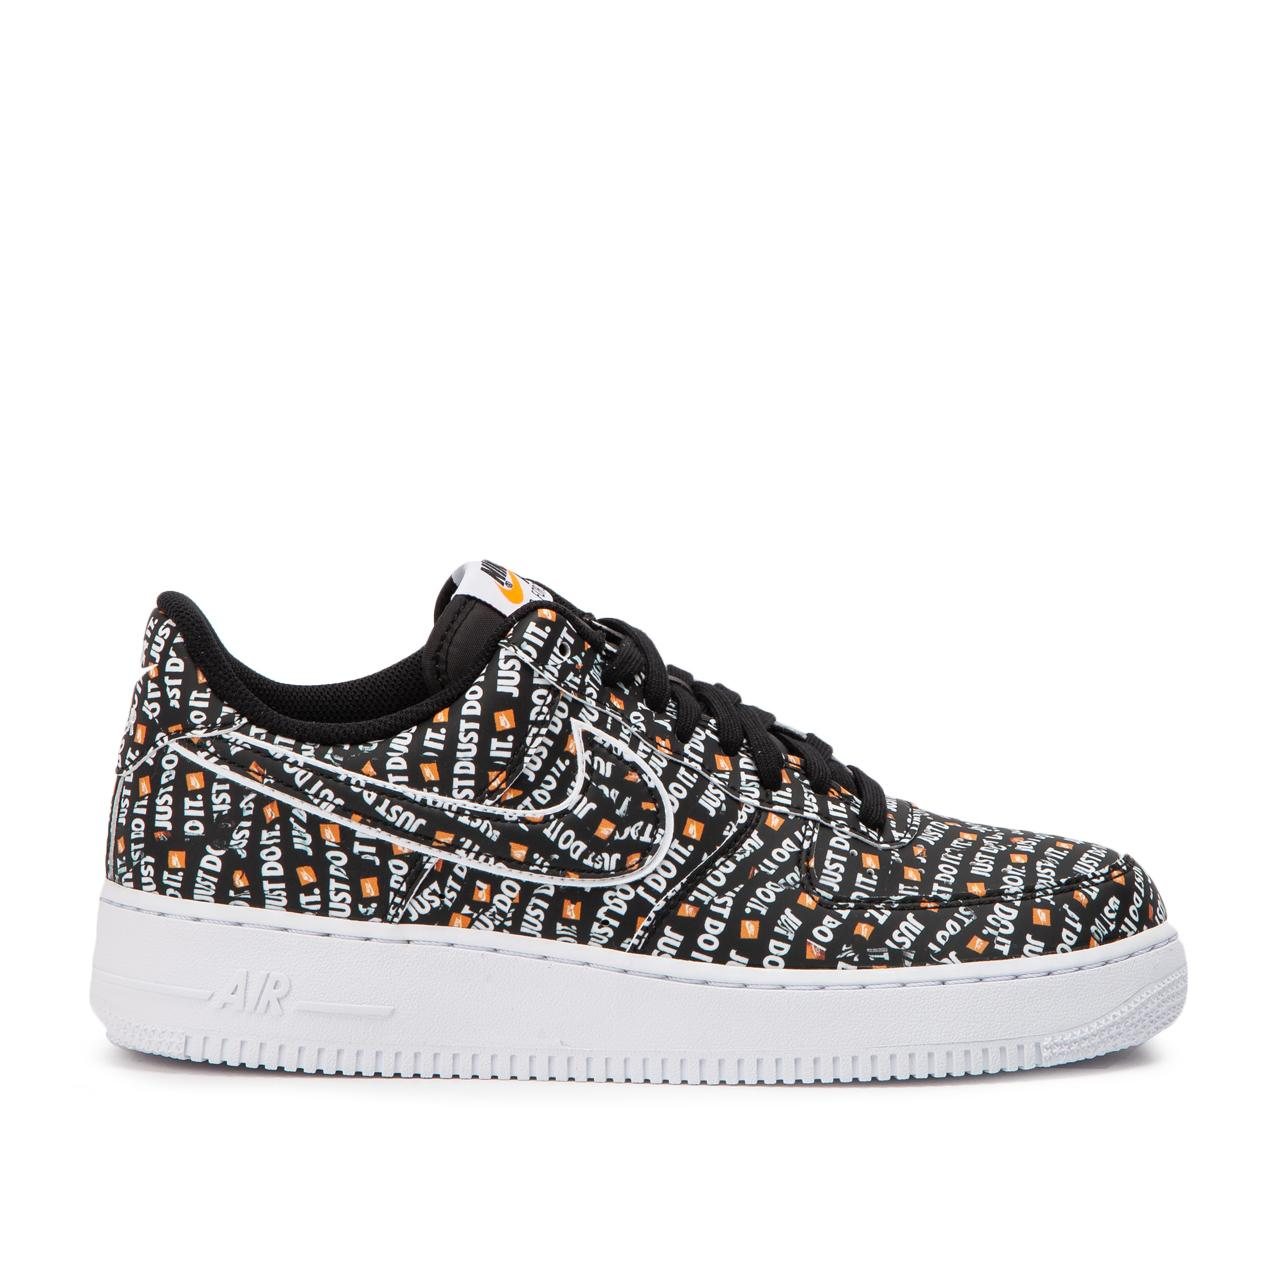 low priced 7d7ef c9168 Nike Nike Air Force 1  07 Lv8 Jdi in Black for Men - Save 35% - Lyst